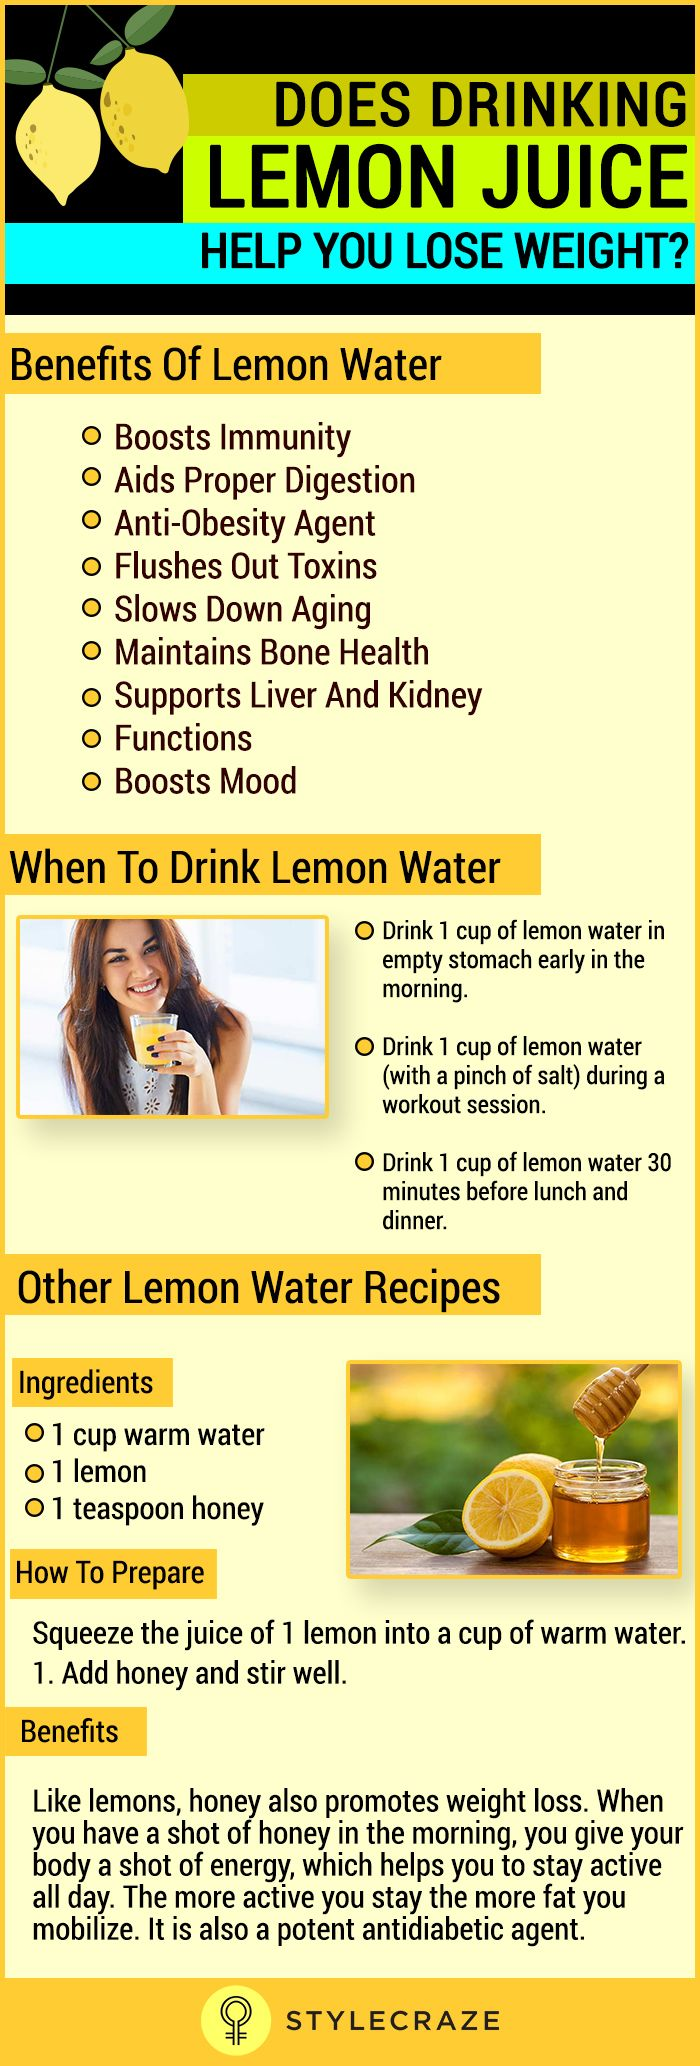 Losing weight is tough! Diets are boring, and workouts are tiring. But the secret to losing those few extra pounds without the stress of dieting or working out is lemon juice. Having lemon juice thrice a day can melt the fat away!